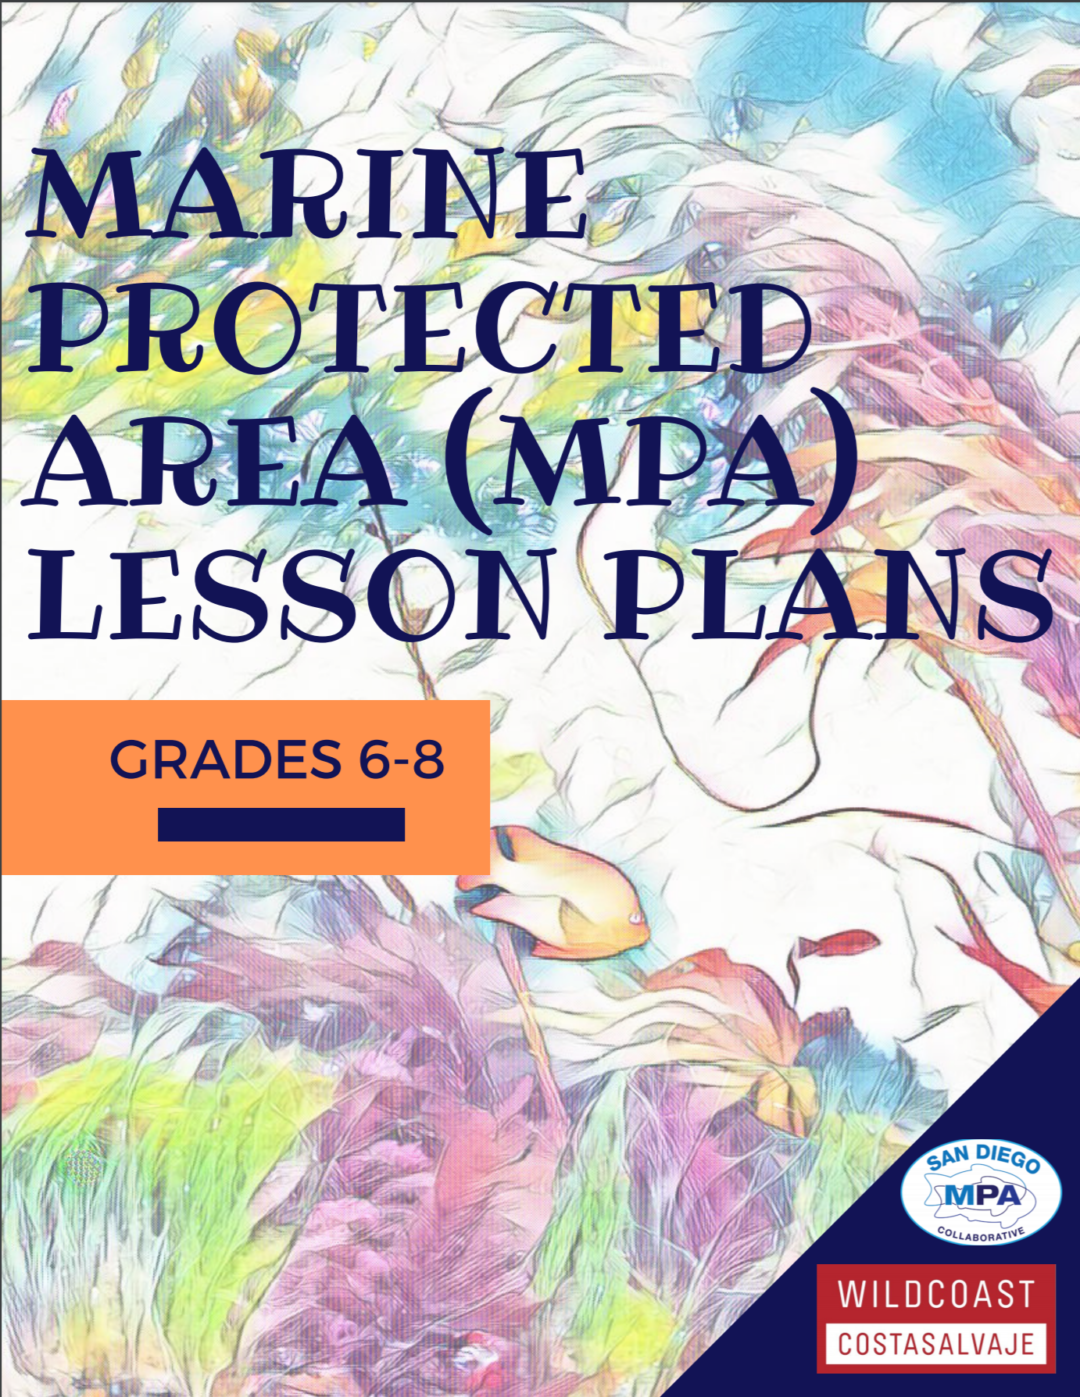 Sandy Shore: All Waterways Lead to the Ocean – Grades 6-8